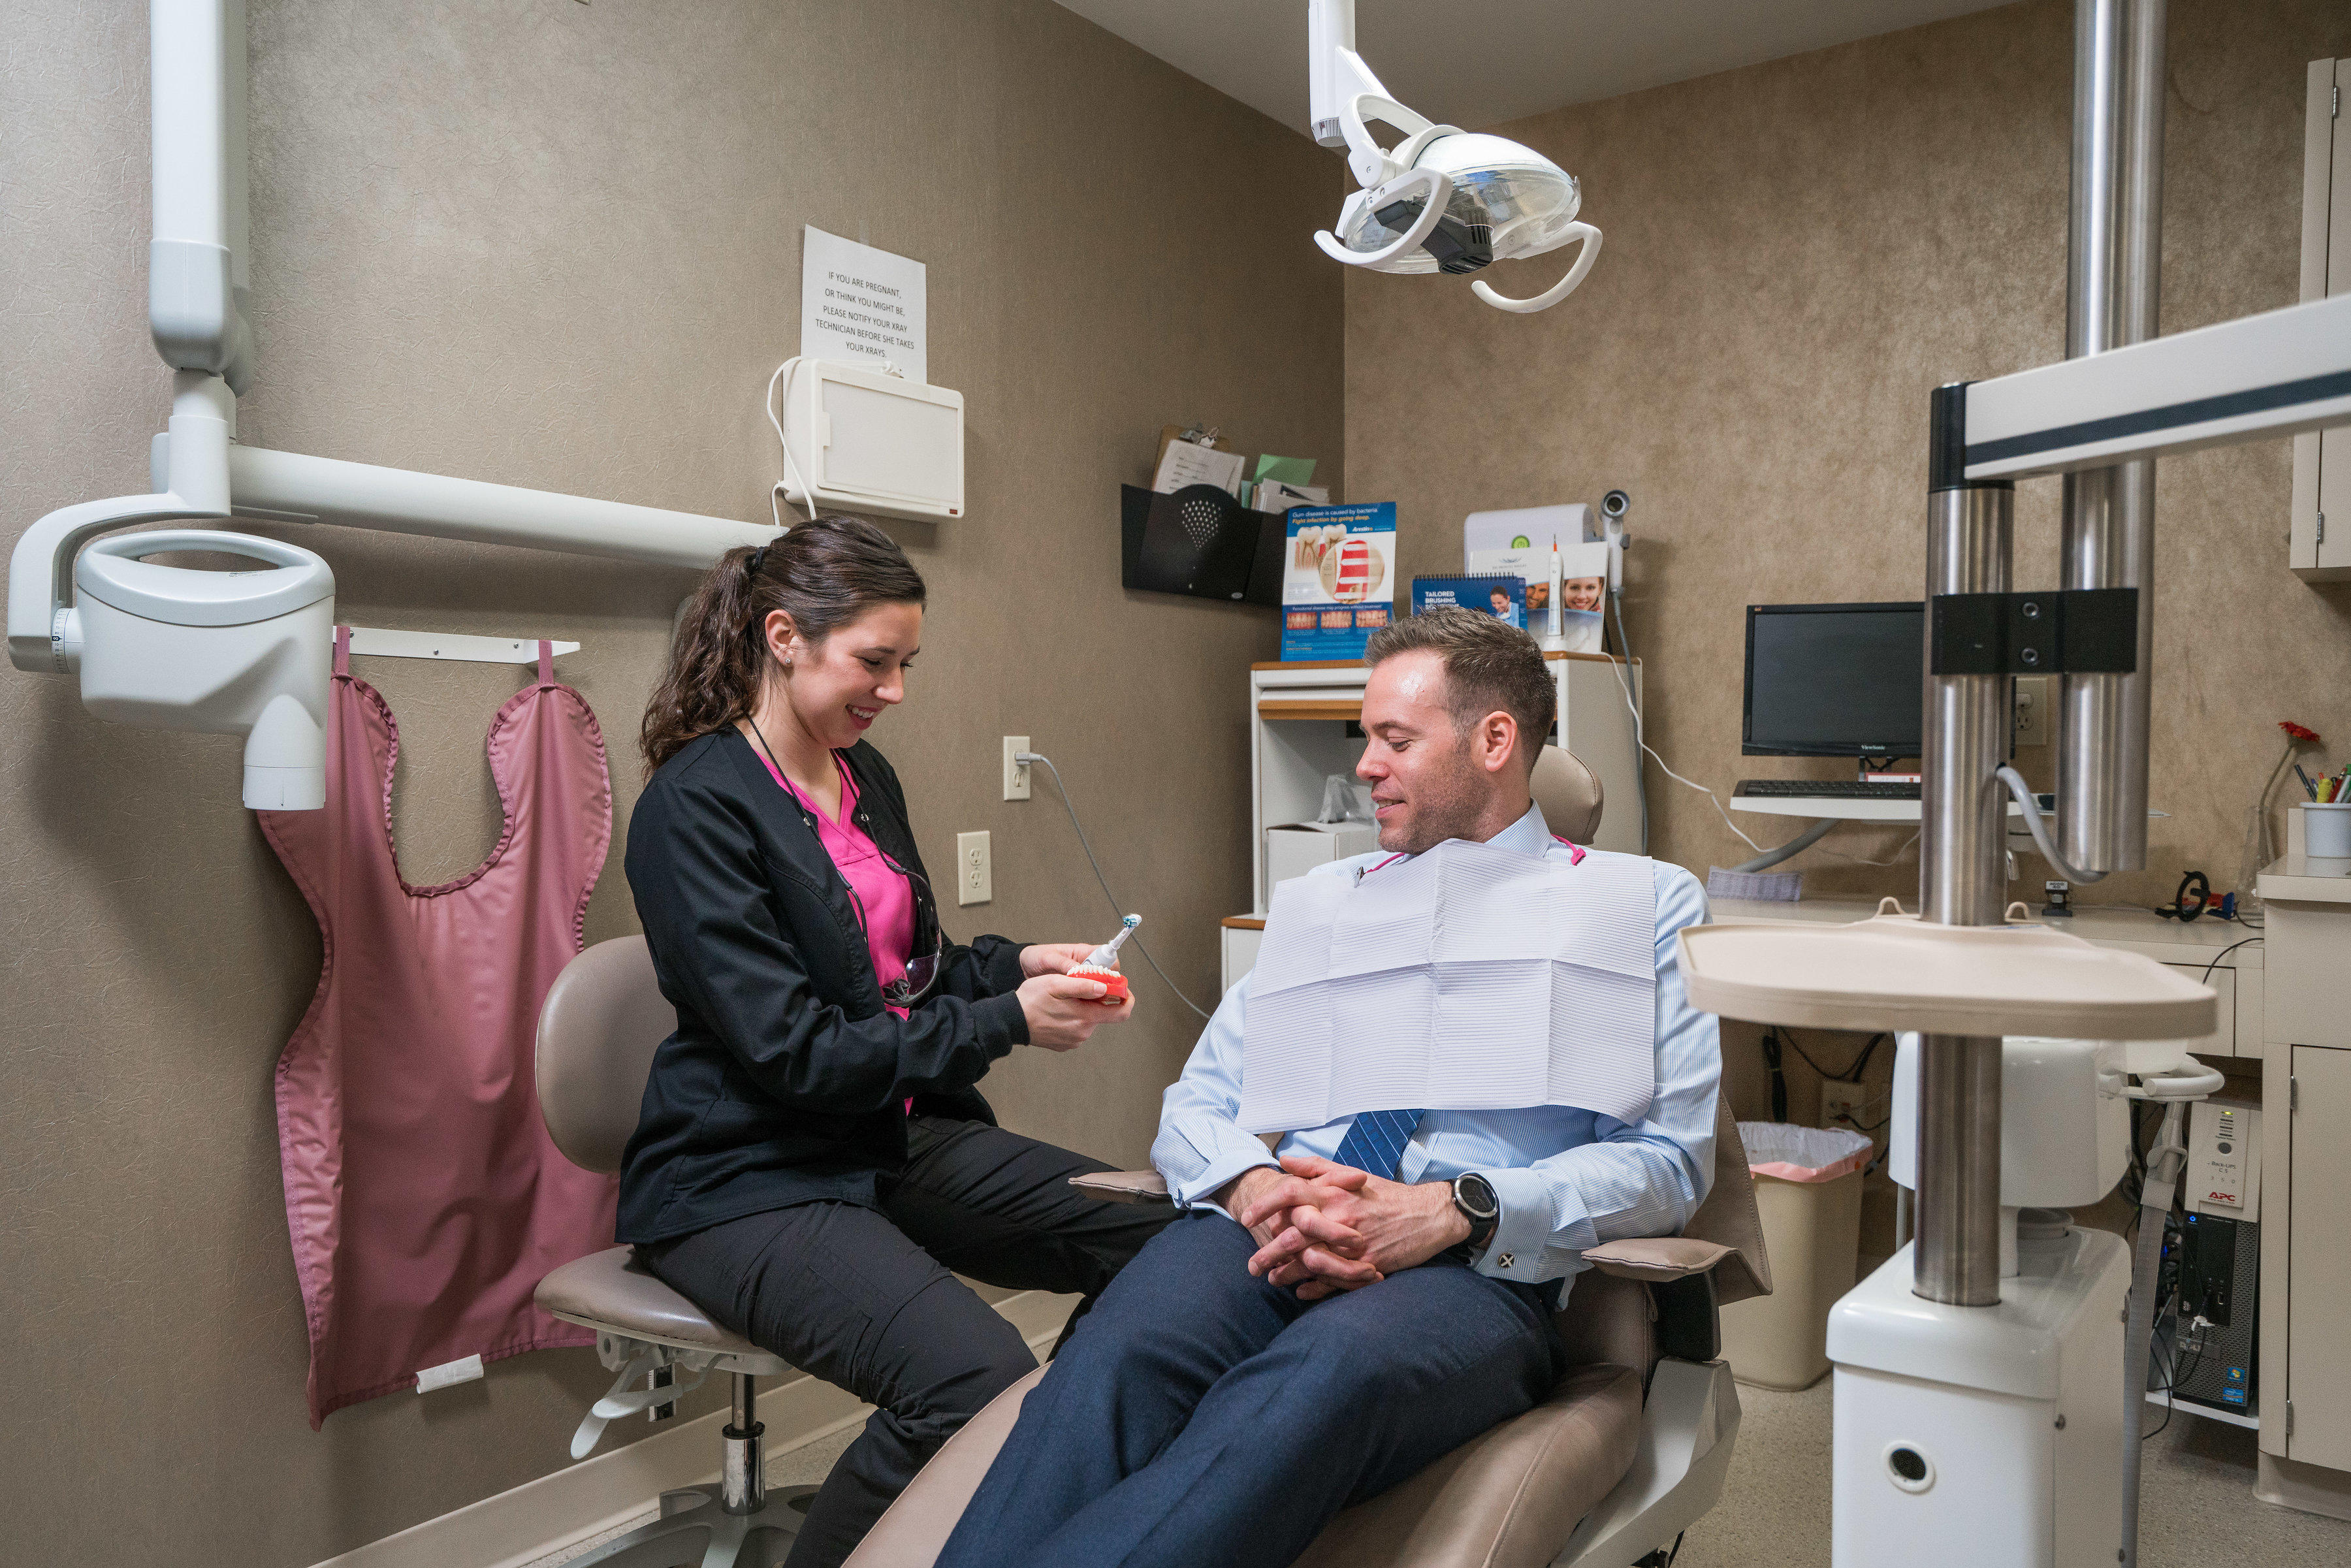 Orchard Hill Family Dentistry: Peggy Schomaker, DDS image 6